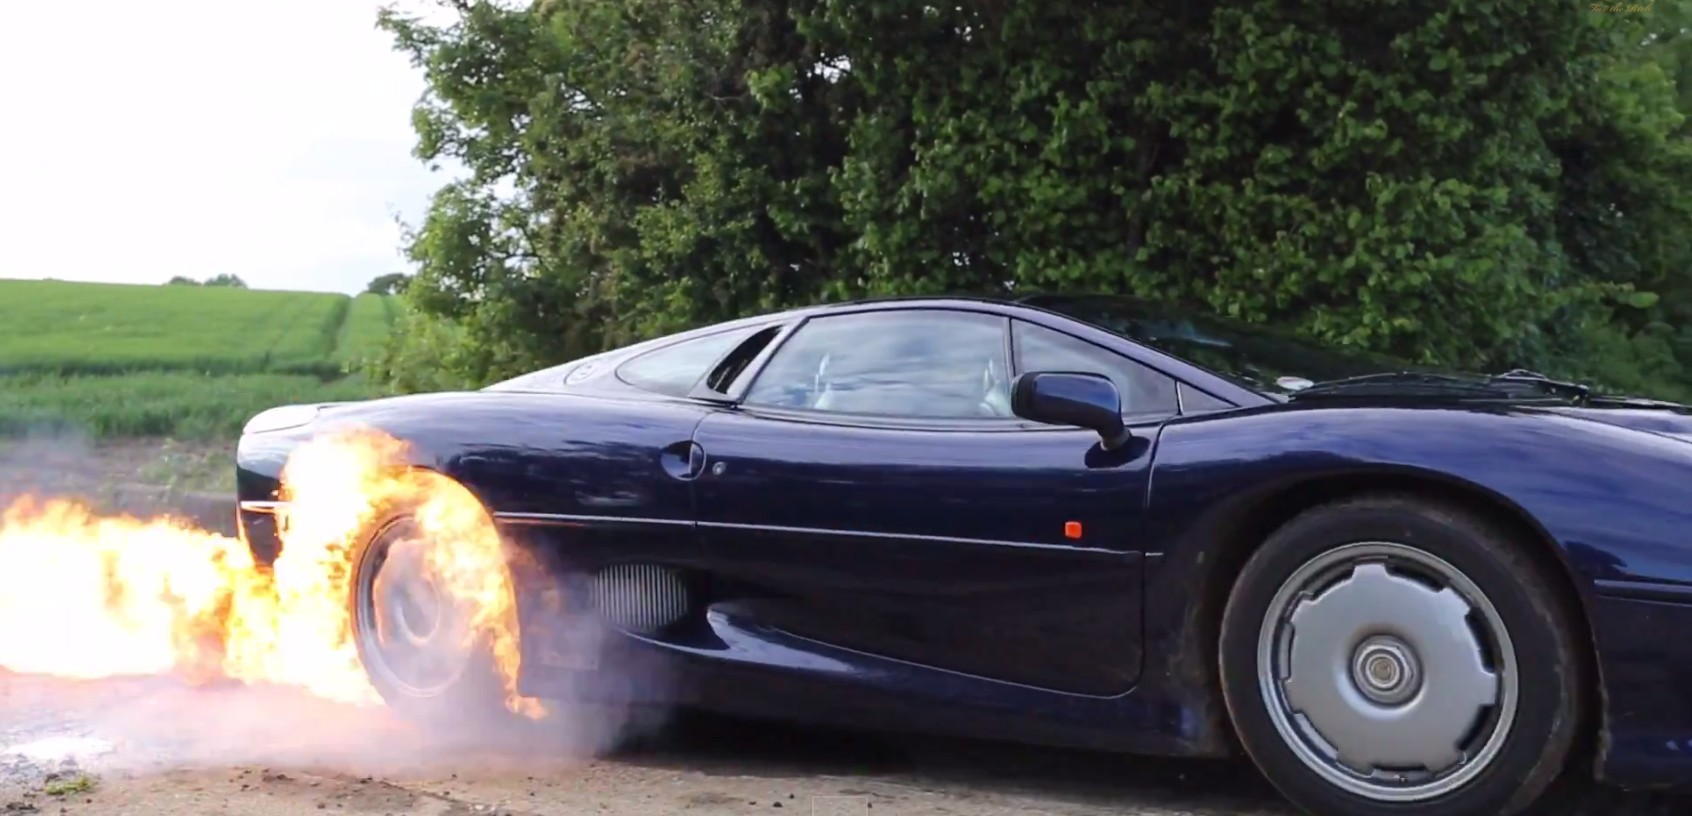 first remote car with 1092815 Jaguar Xj220 Lights Tires On Fire In Ultimate Burnout Video on 1096125 chinas Gac Motor To Present Gs4 Crossover At 2015 Detroit Auto Show together with Tamo Racemo 2017 Geneva Motor Show 259811 additionally 207944 besides The Awesome Rc Audi R8 V10 Supercar Built With Lego Bricks in addition 207601.